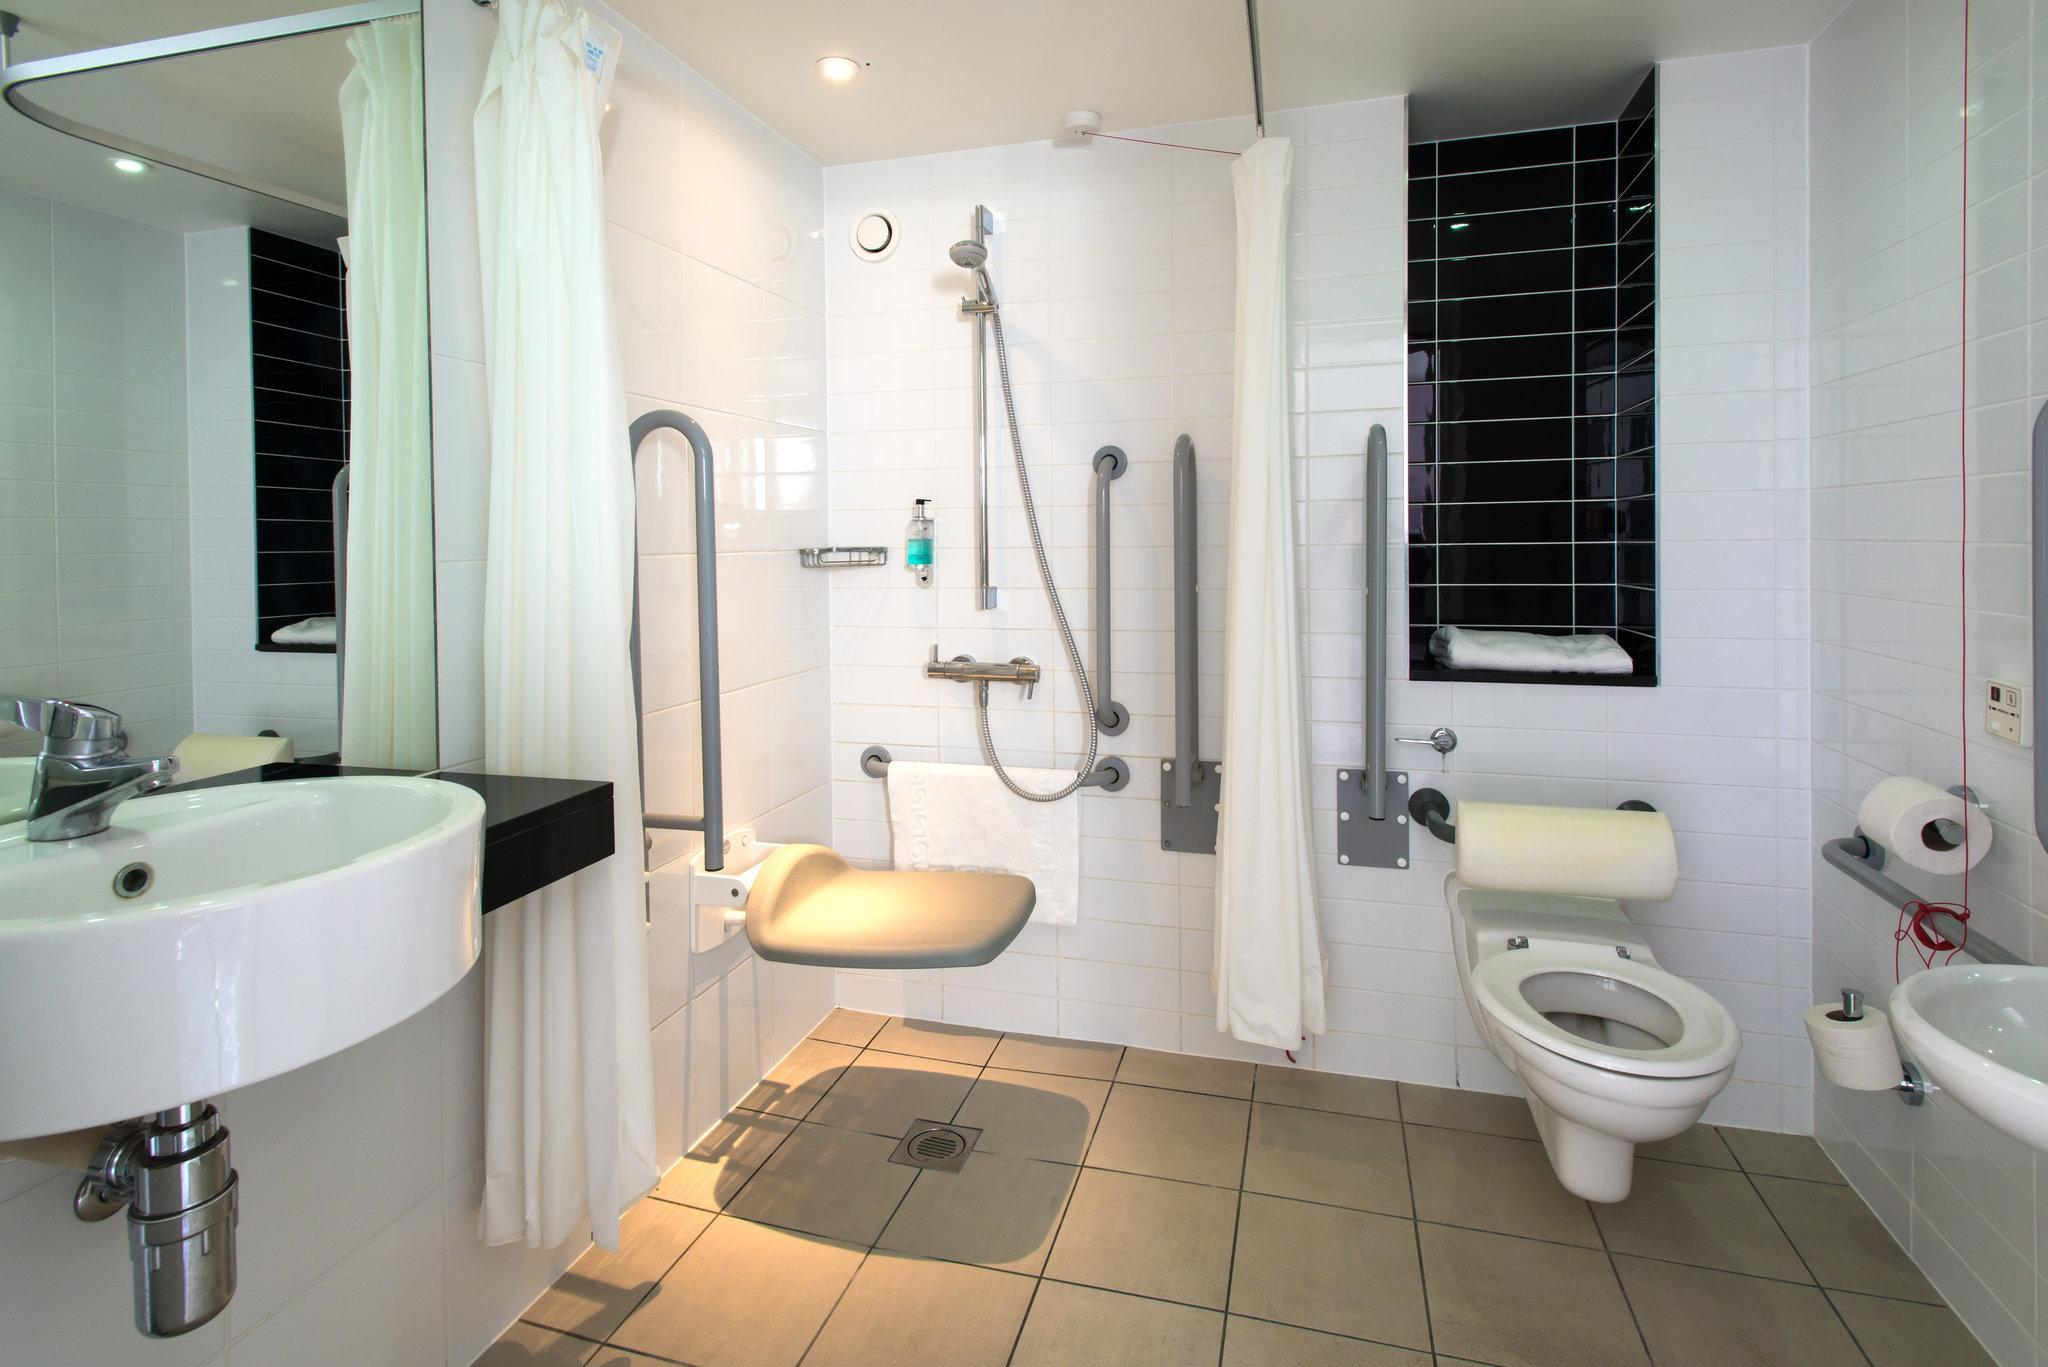 2 SINGLE BEDS WC ACCESSIBLE NONSMOKING